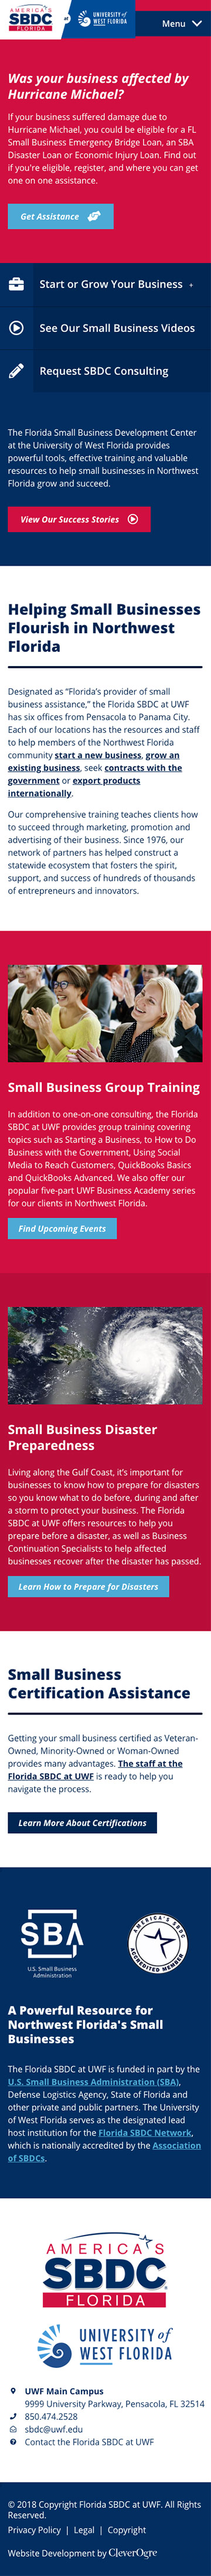 Website developed for SBDC of Florida at UWF by CleverOgre